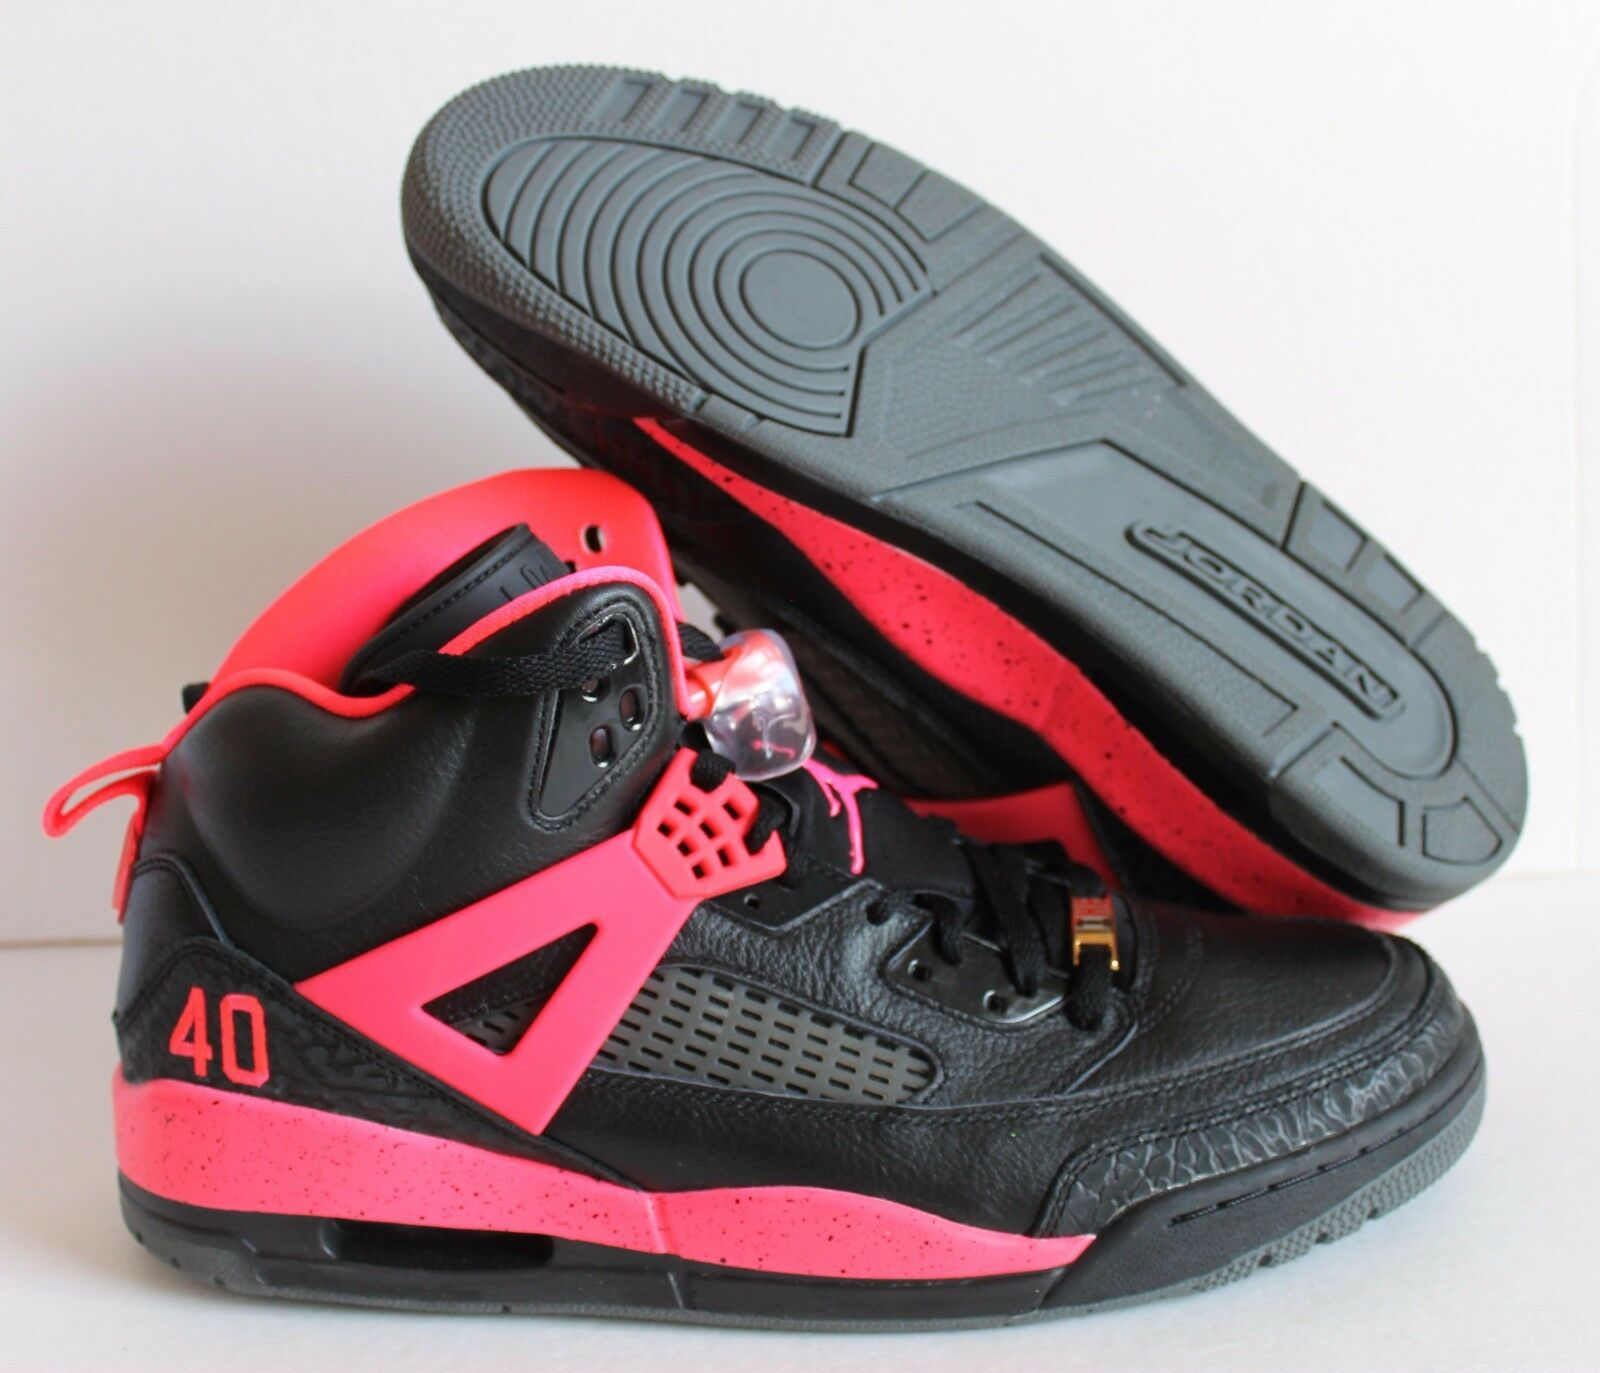 NIKE AIR JORDAN SPIZIKE iD BLACK -SOLAR RED  SZ 13  [605236-999]